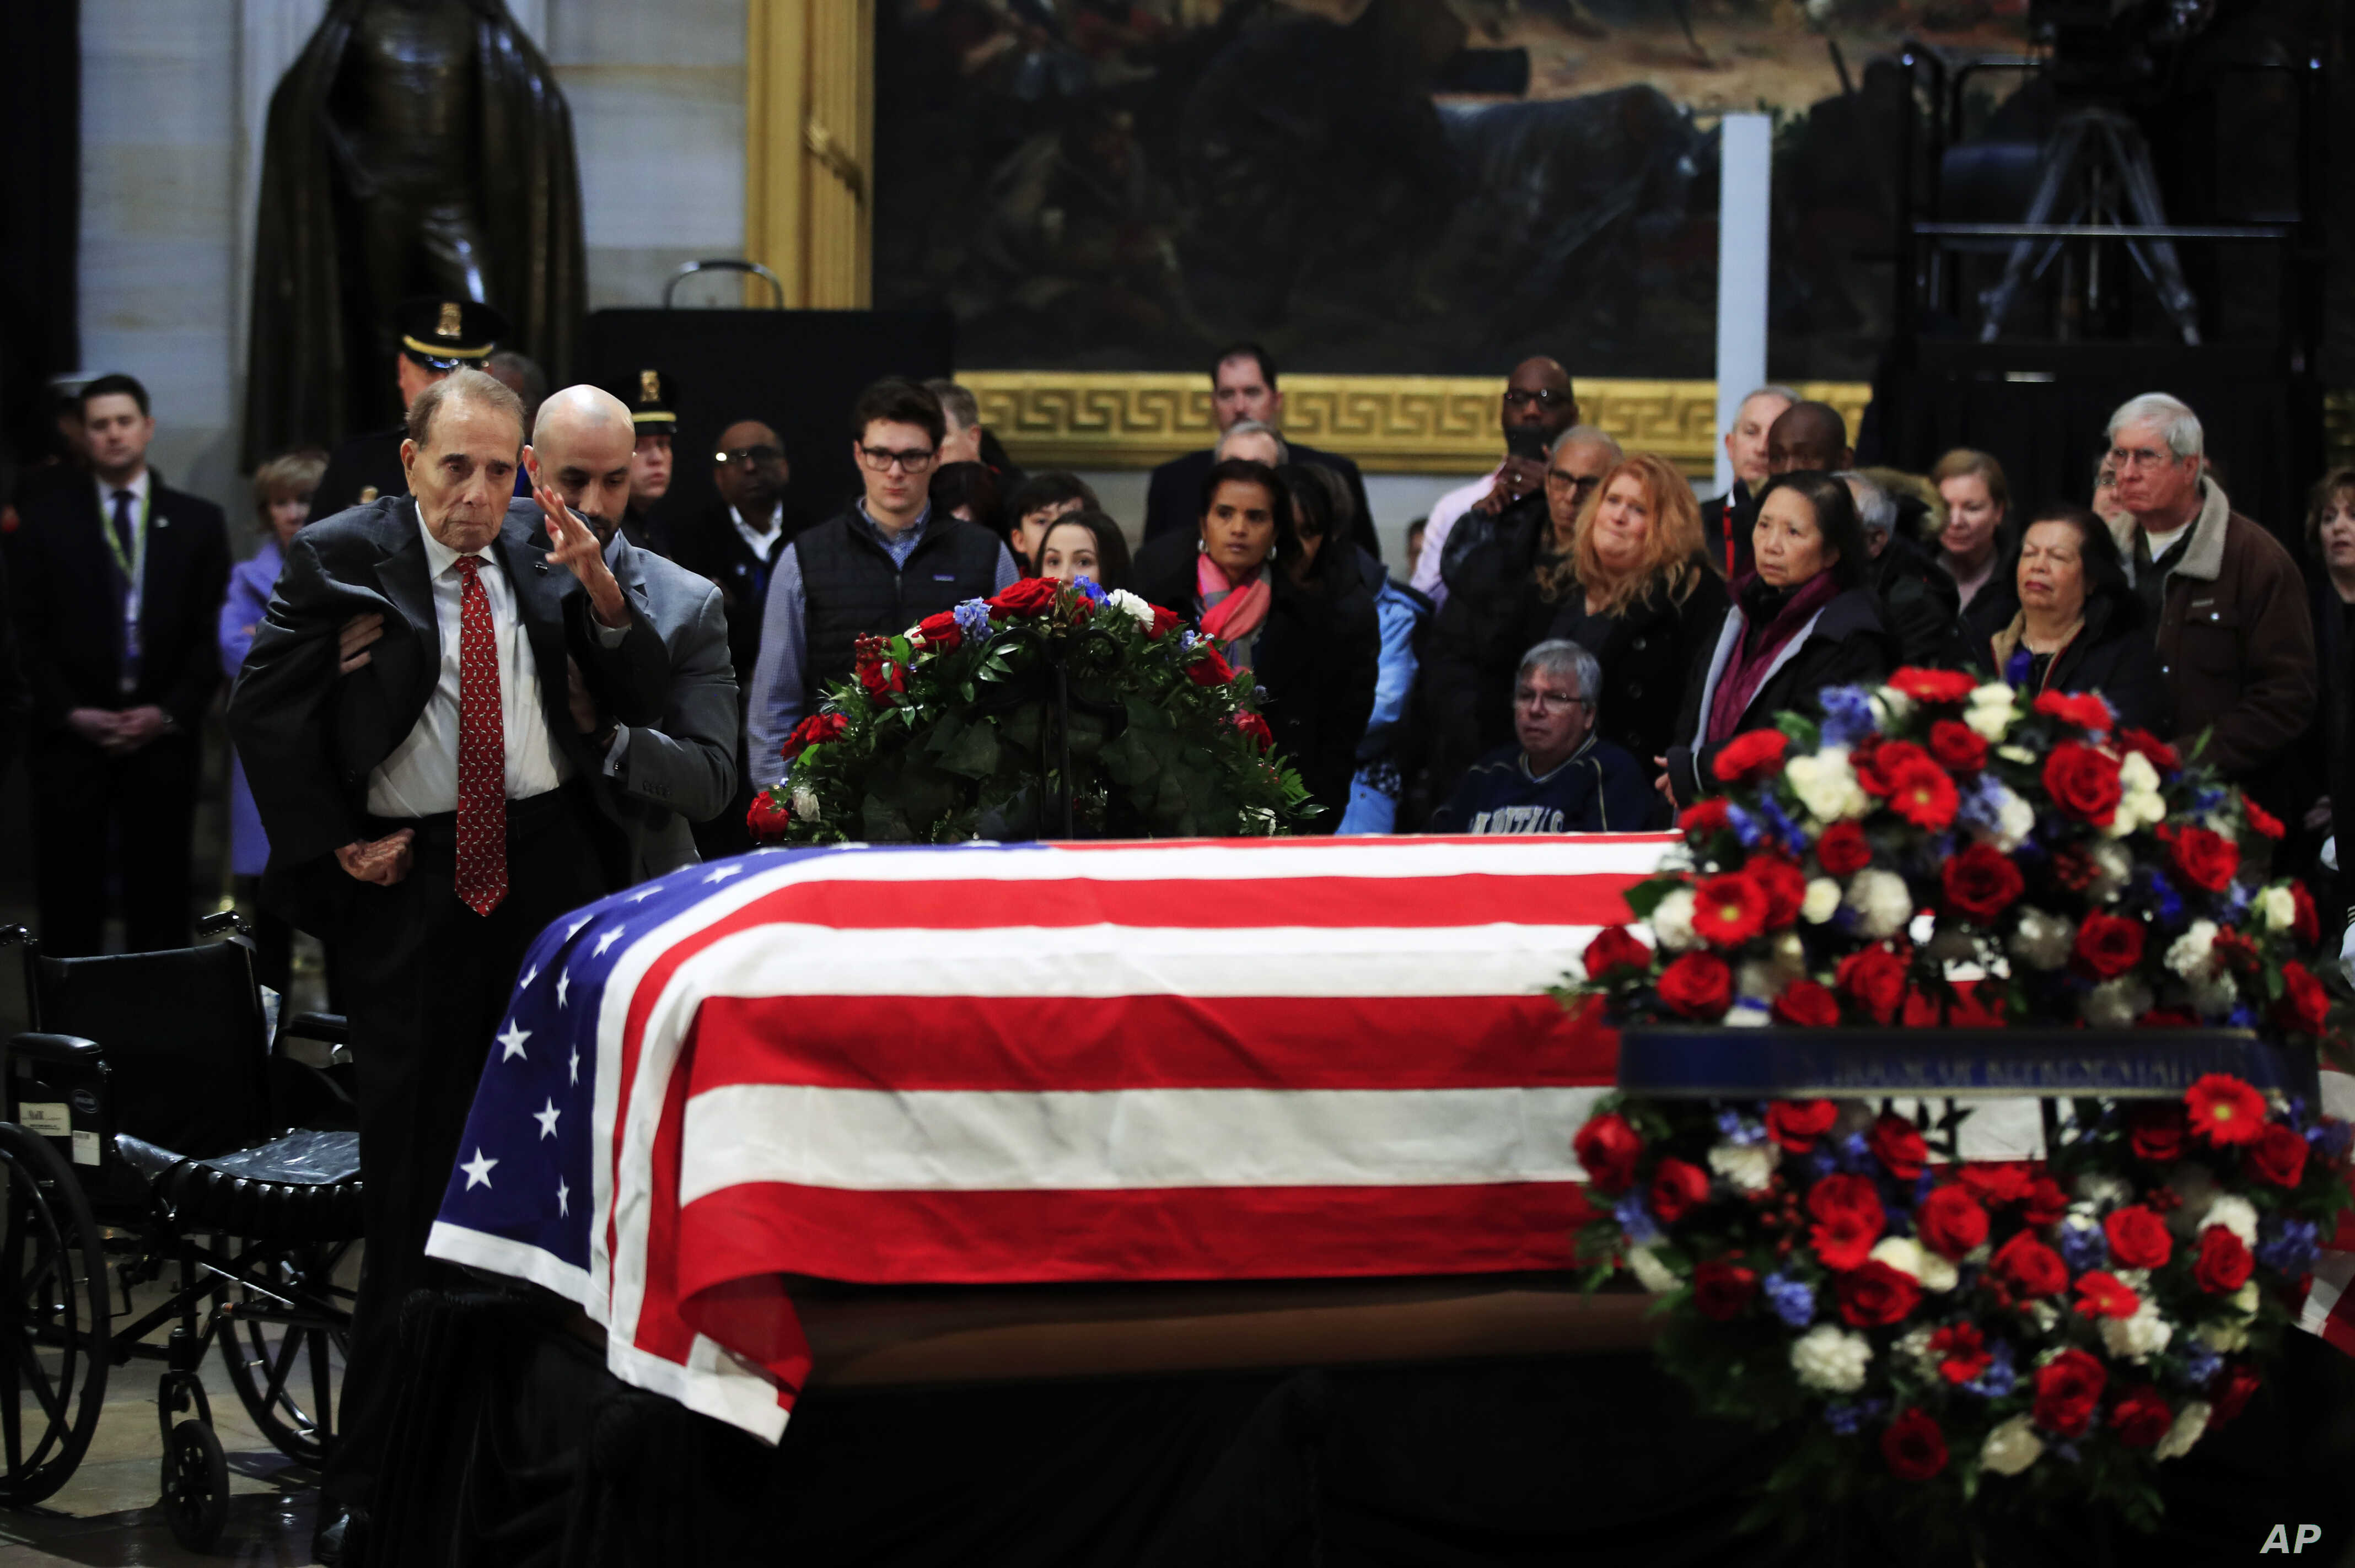 Former Sen. Bob Dole salutes the flag-draped casket containing the remains of former President George H.W. Bush as he lies in state at the U.S. Capitol in Washington,  Dec. 4, 2018.